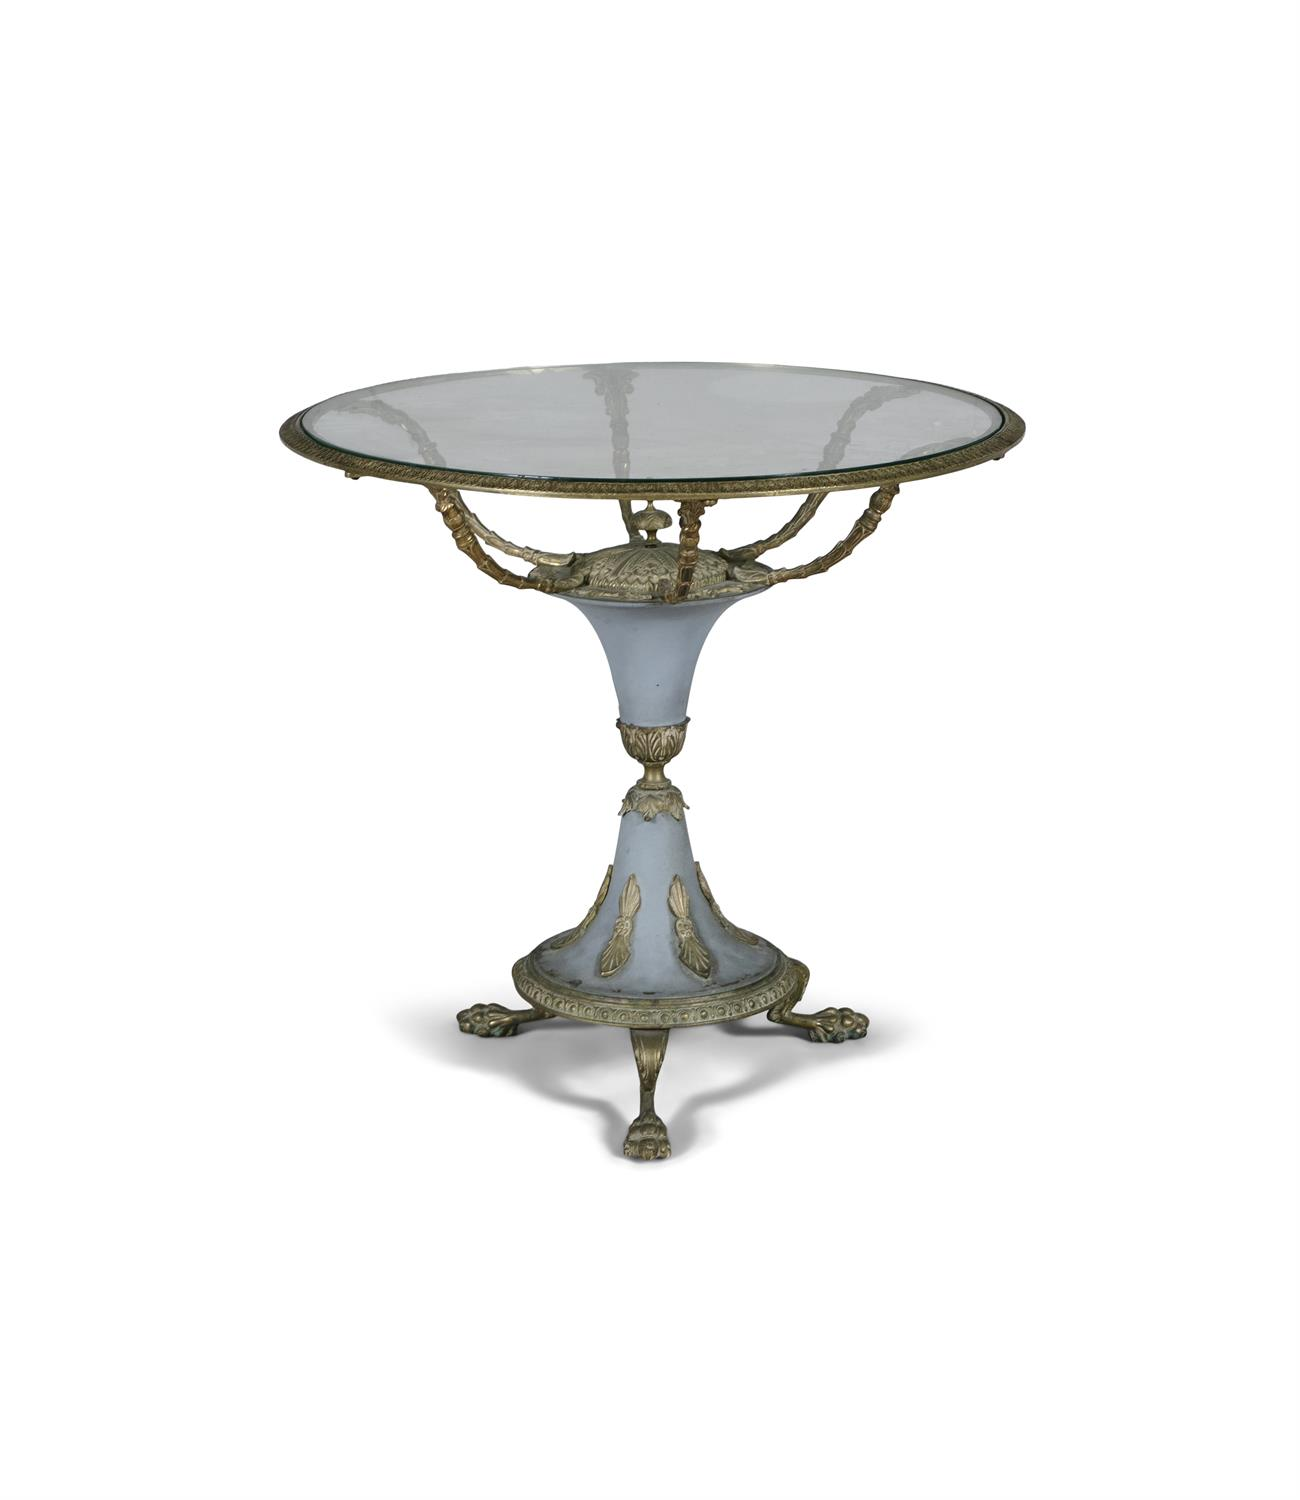 A FRENCH GILT METAL GLASS TOPPED OCCASIONAL TABLE, of circular form, the glazed top supported on